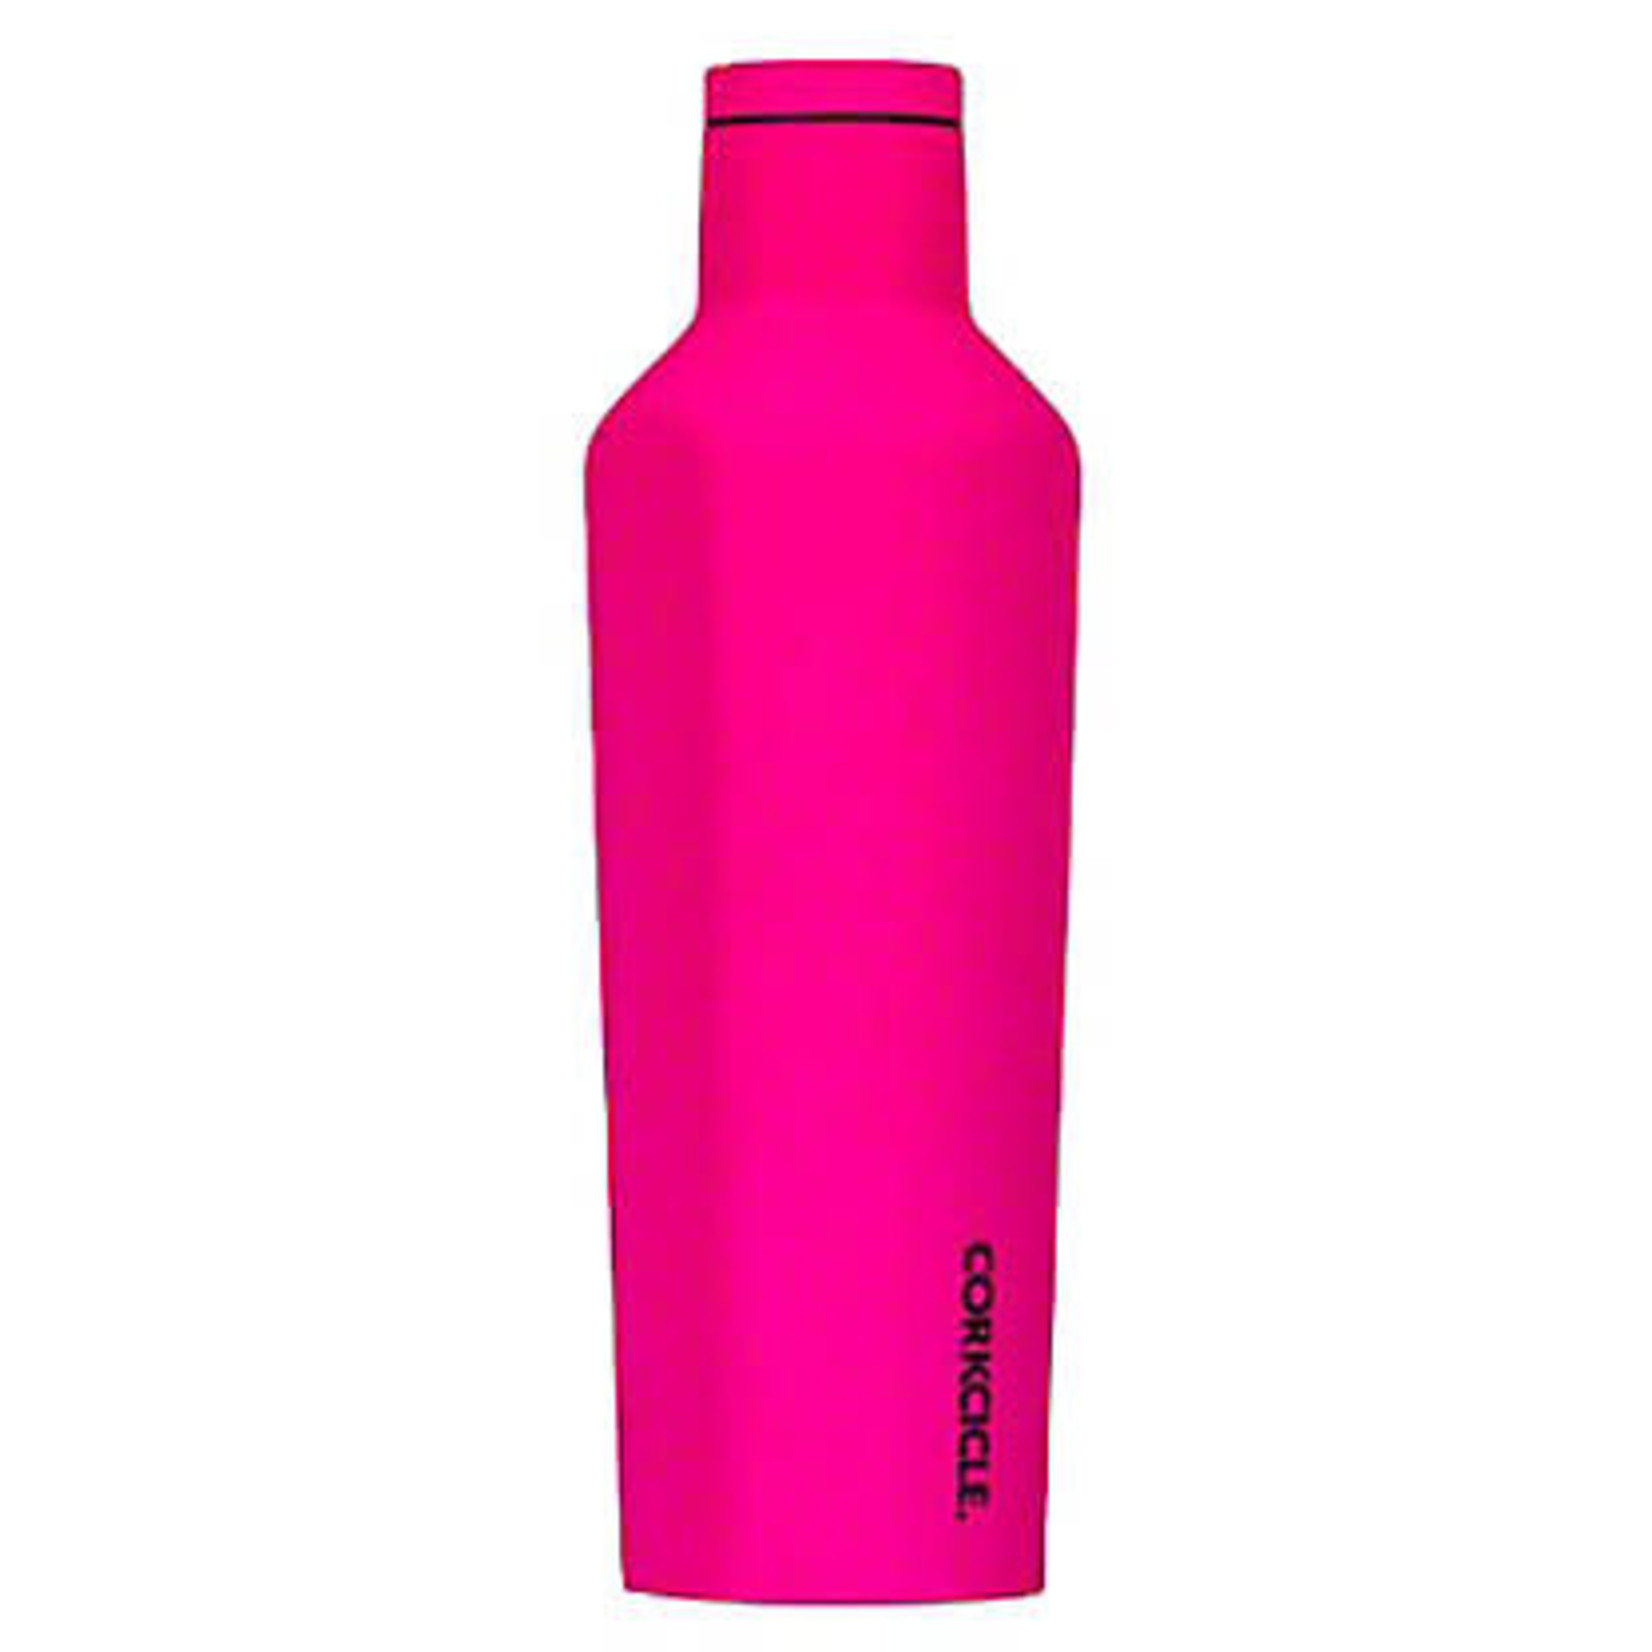 Corkcicle Canteen Neon Lights Neon Pink 25oz